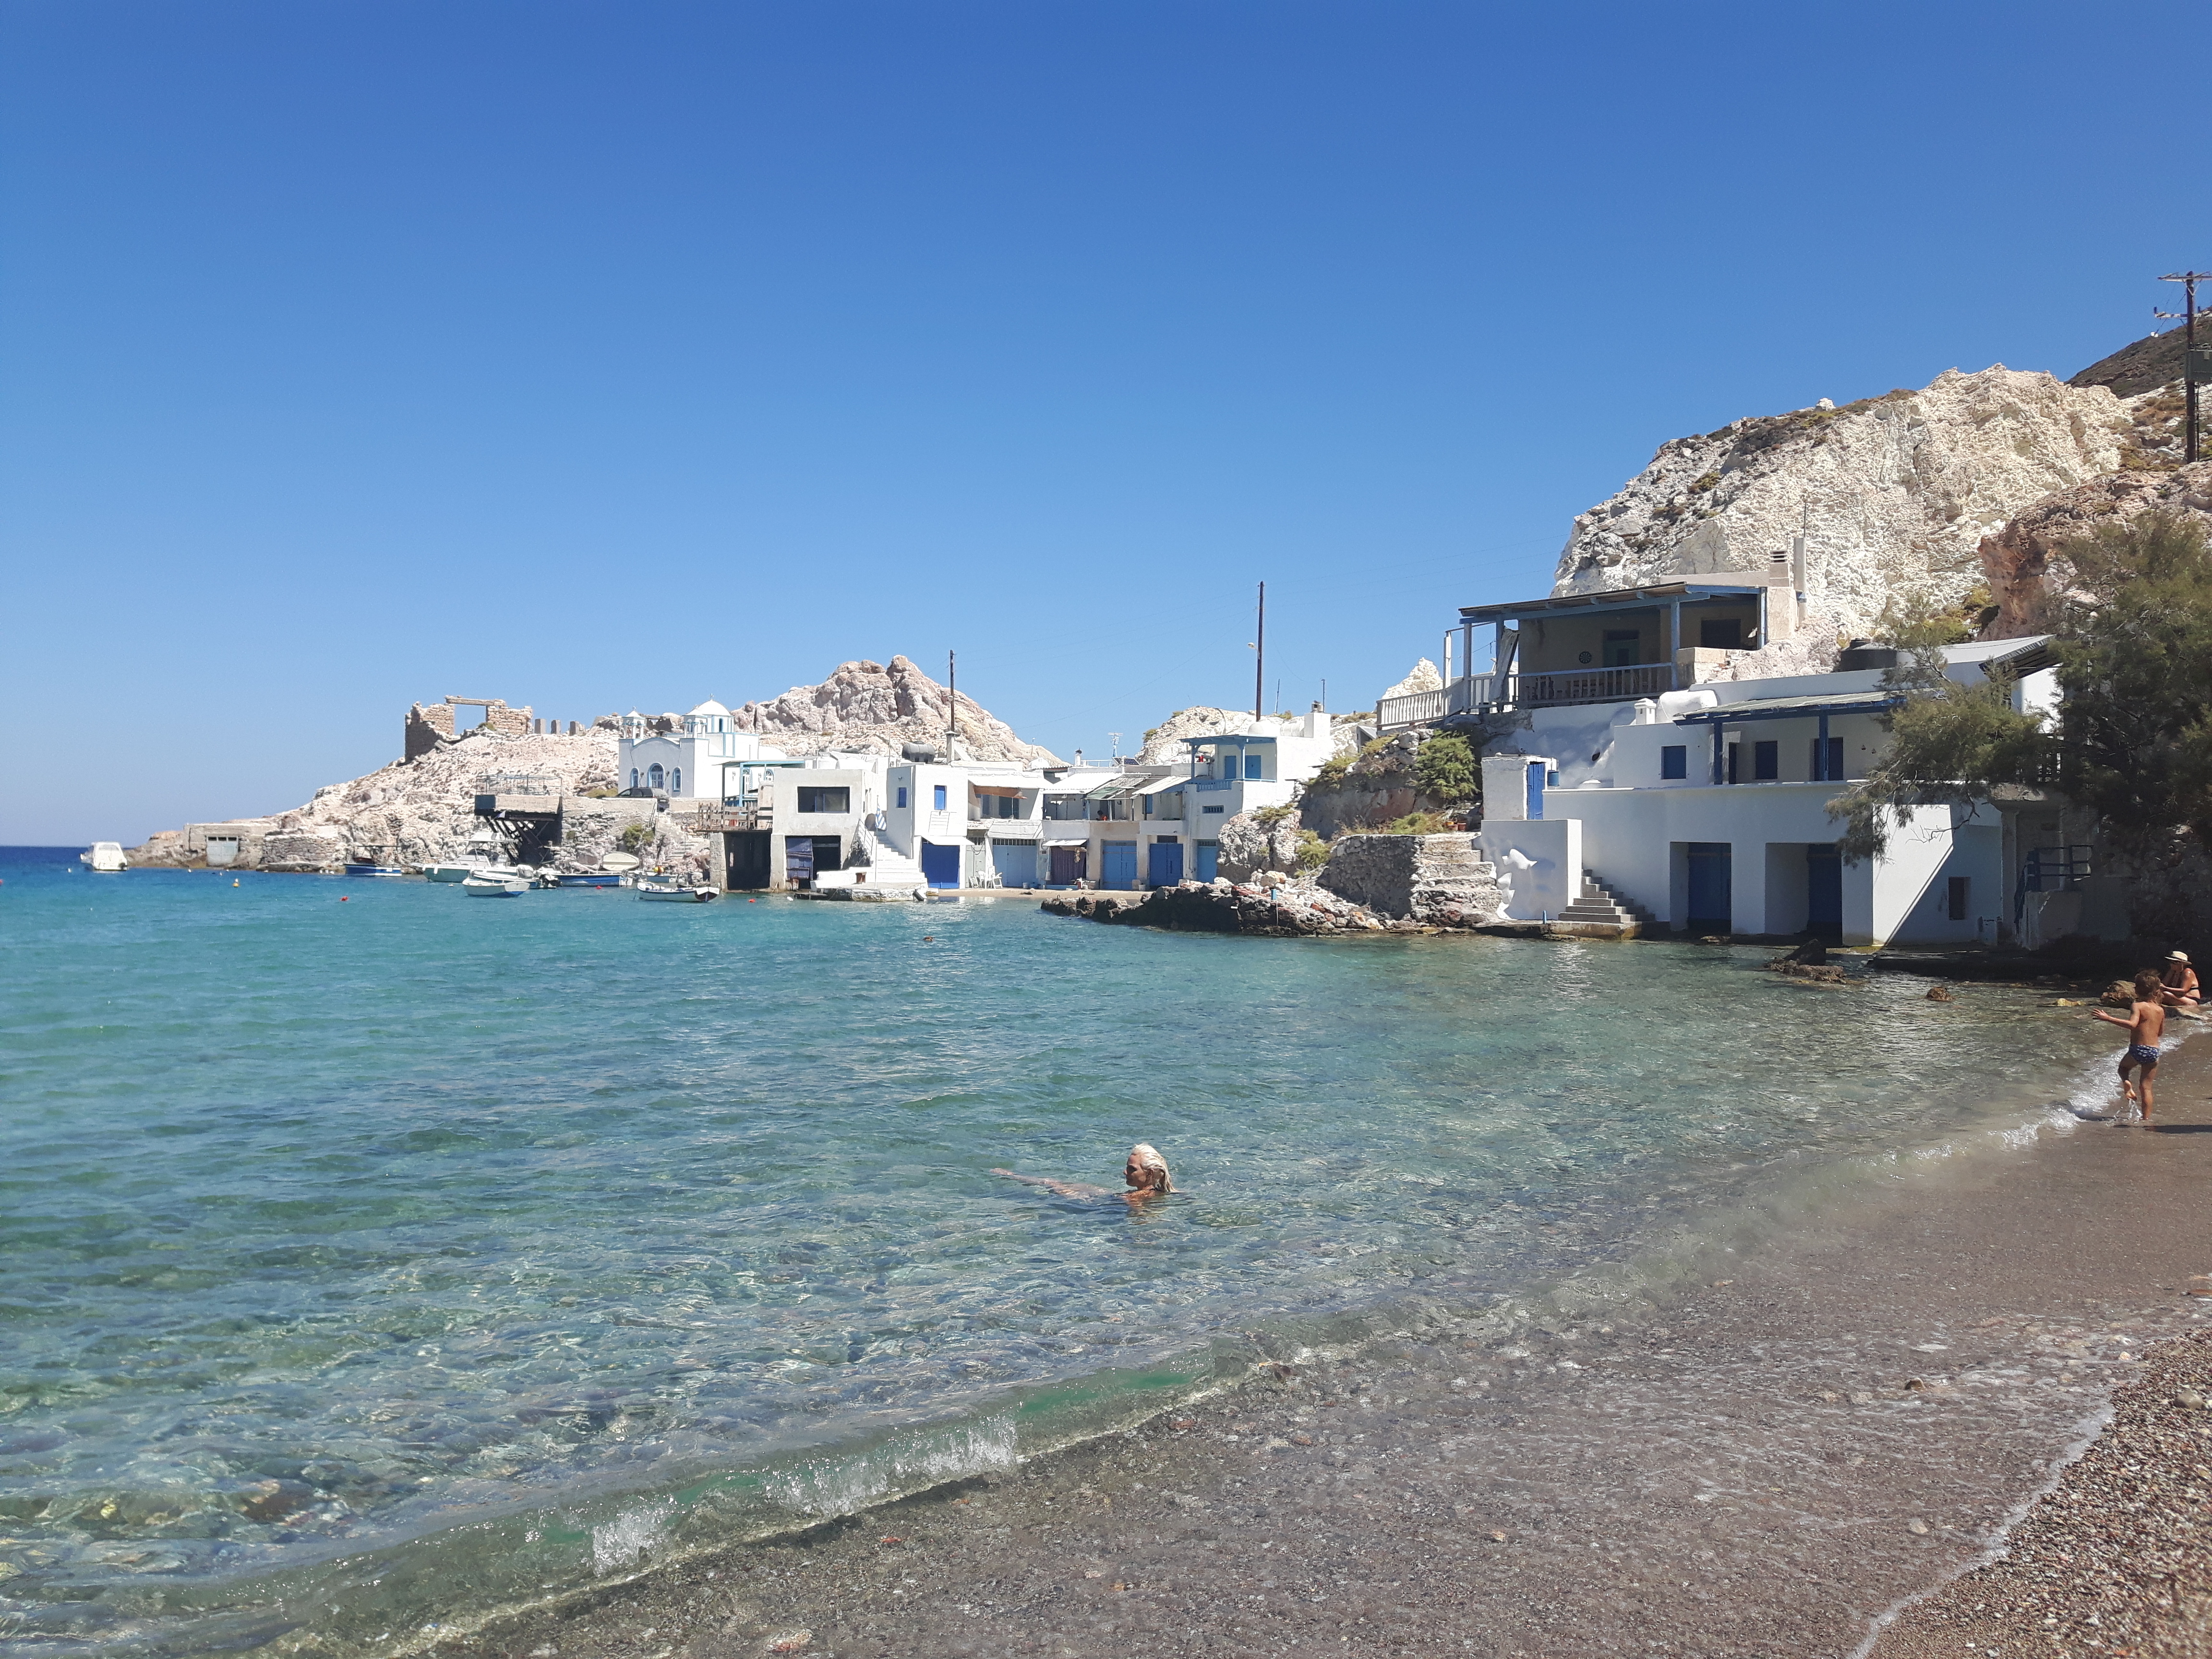 10 best beaches of Milos: discover the Greece unknown